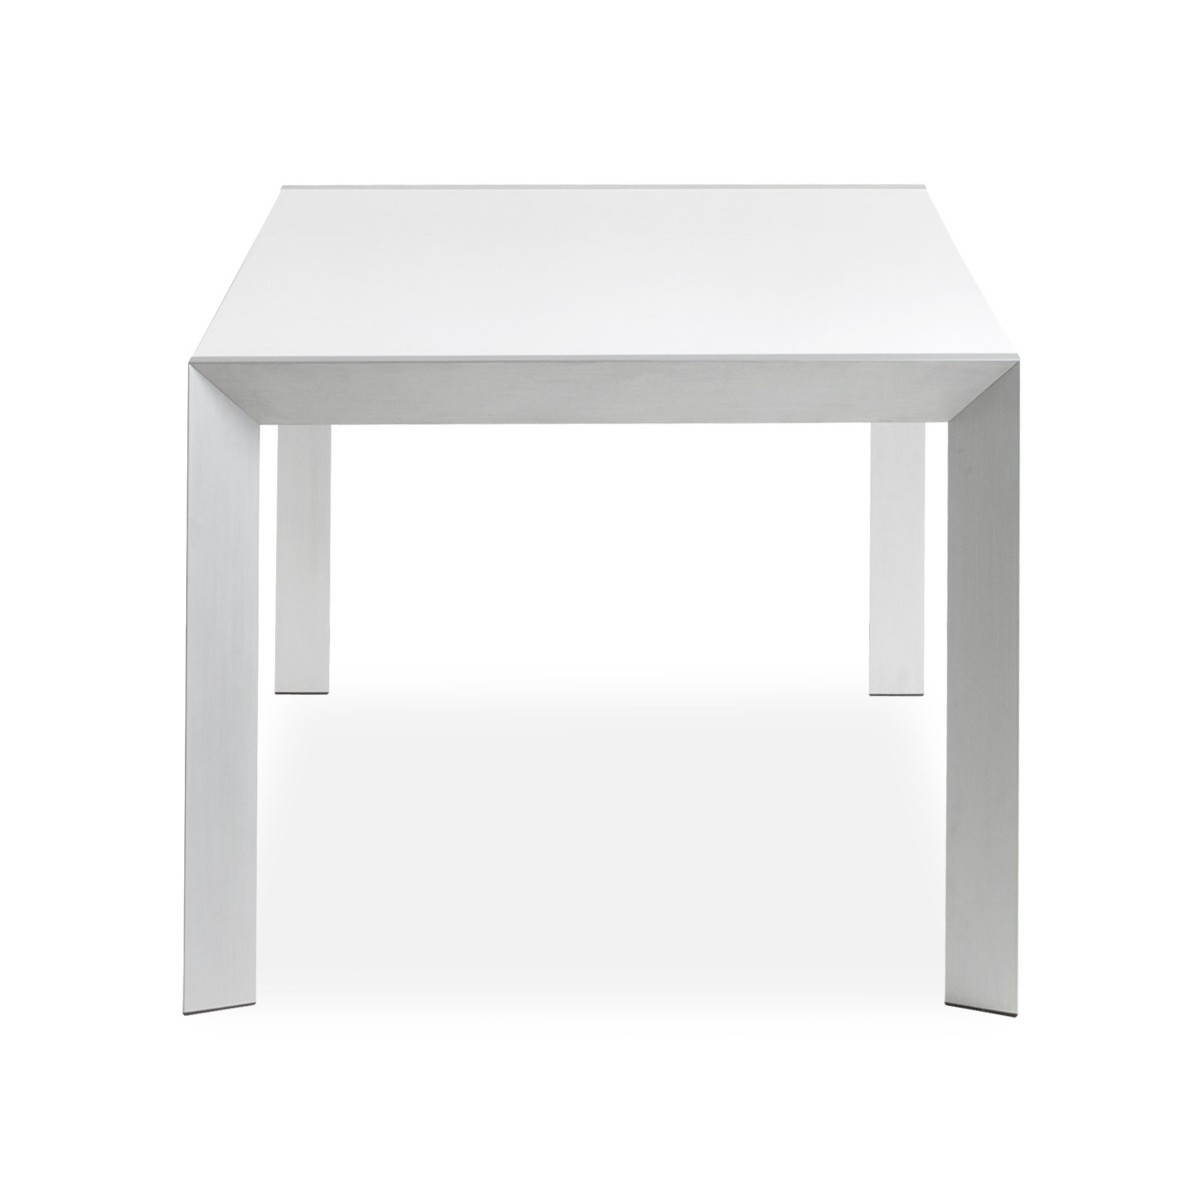 table design rectangulaire avec rallonge fiona en bois laqu et aluminium bross blanc. Black Bedroom Furniture Sets. Home Design Ideas